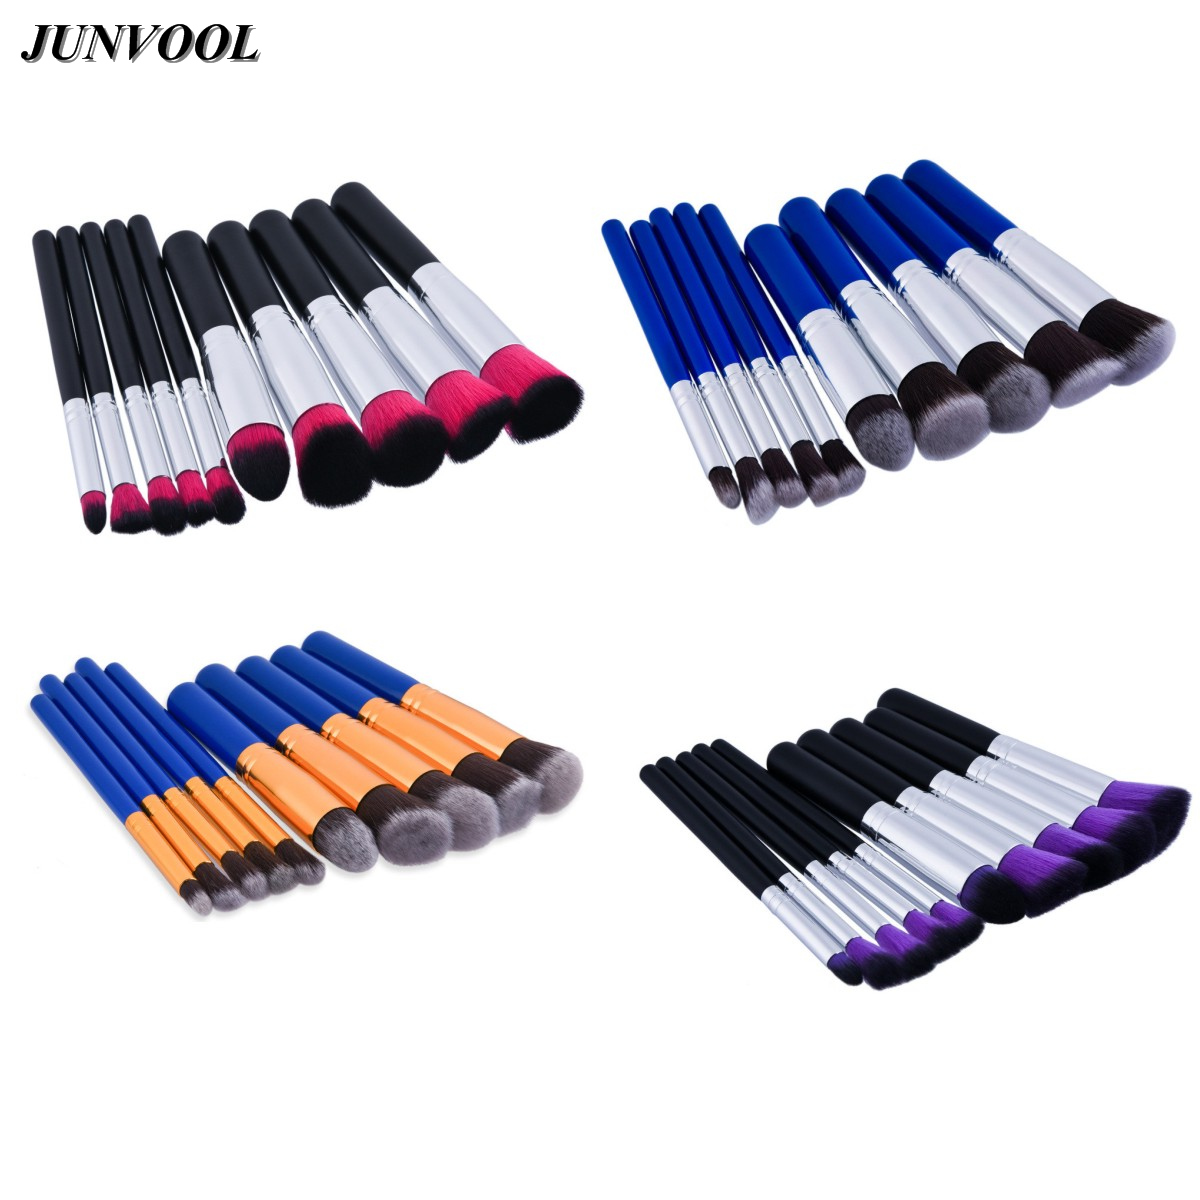 Gold Silver Brushes 10pcs Superior Soft Cosmetic Make Up Brush Set Woman Toiletry Kit Beauty Makeup Kabuki Blush Brush Pink Blue free shipping durable 32pcs soft makeup brushes professional cosmetic make up brush set